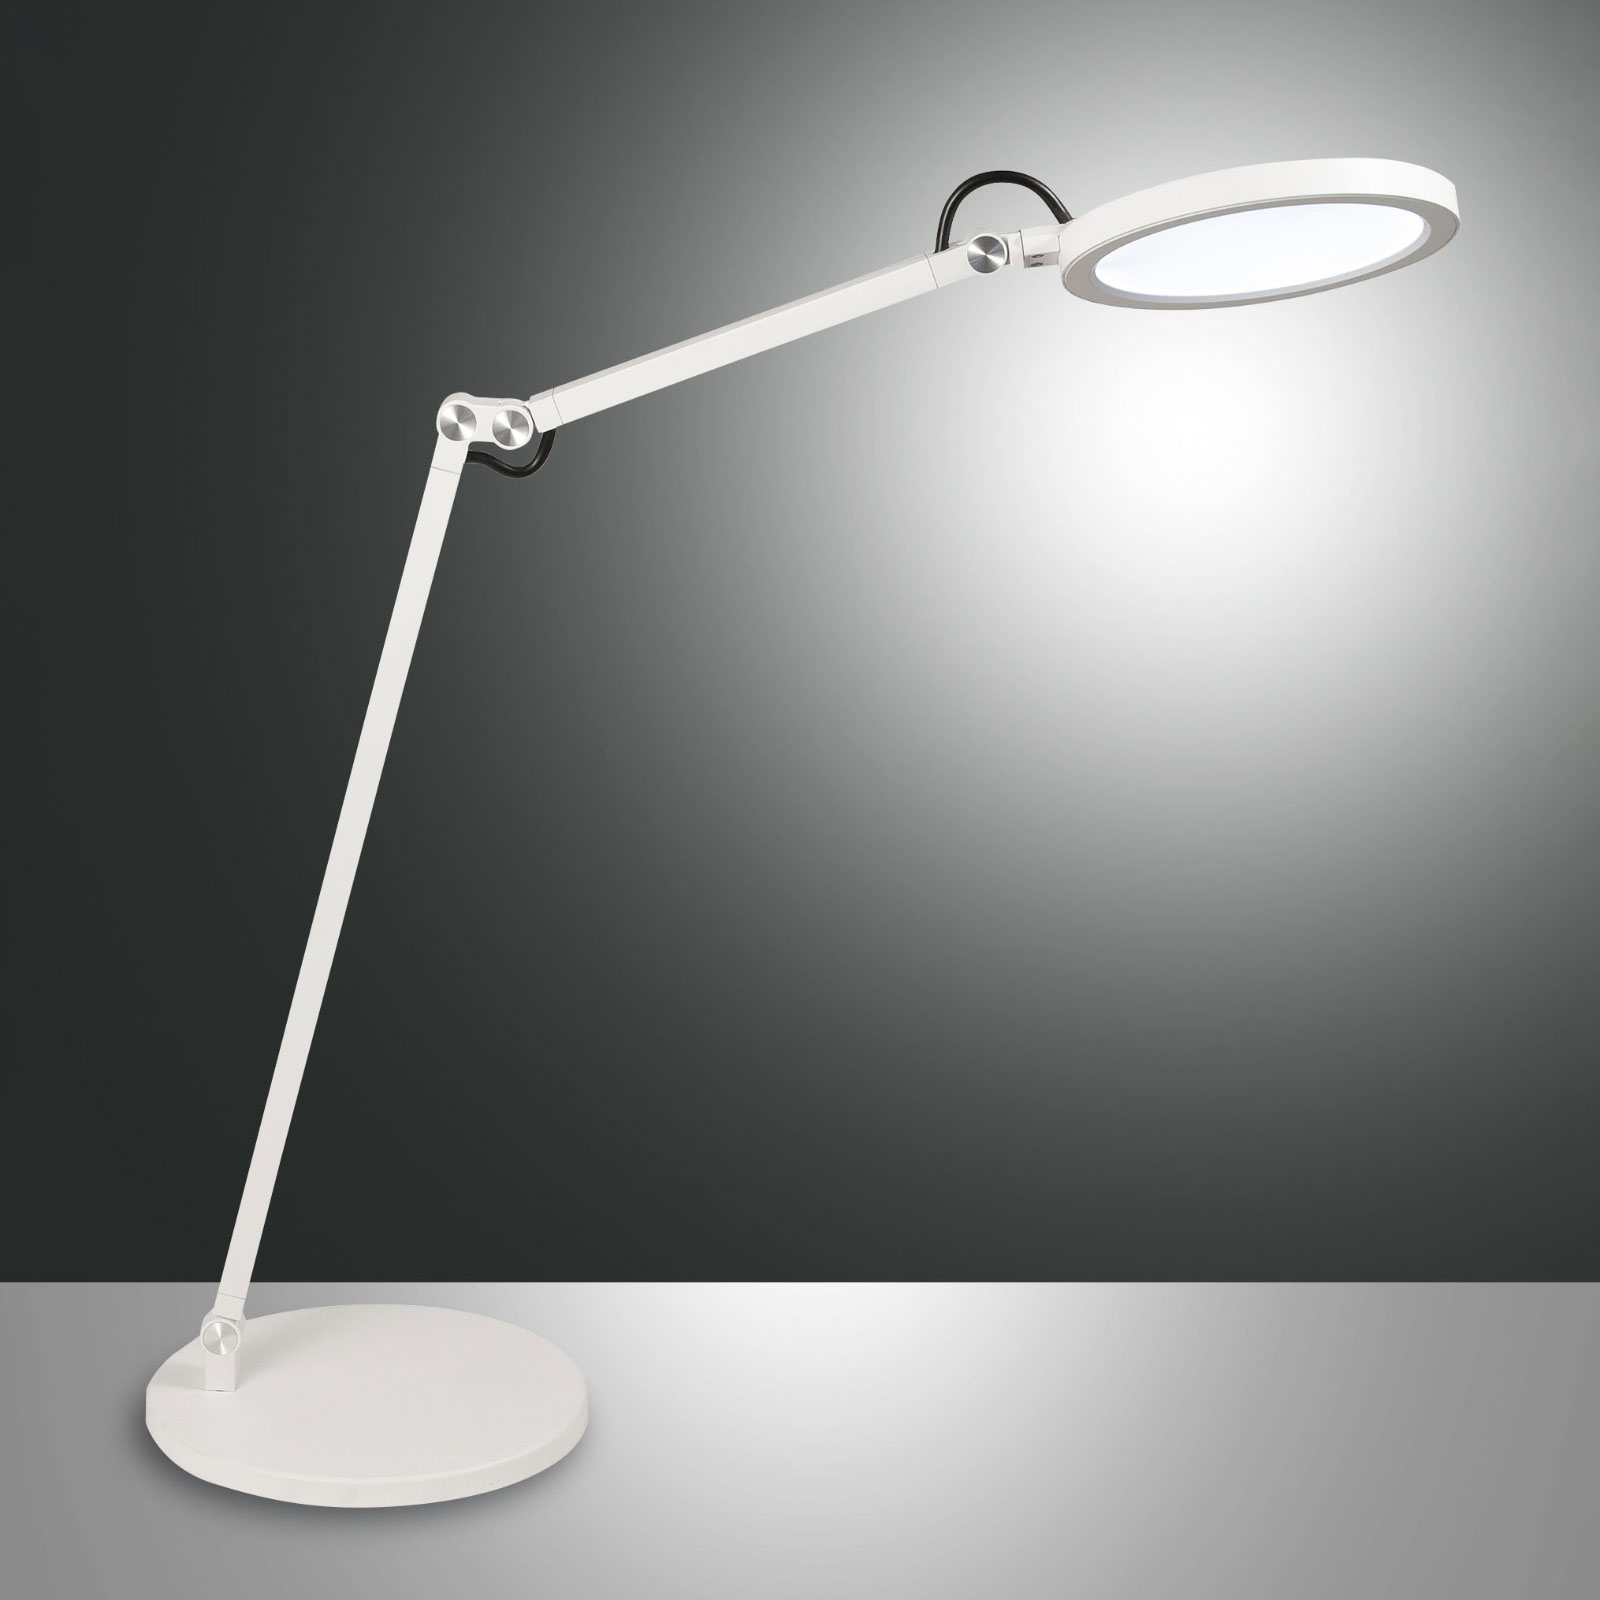 LED bureaulamp Regina met dimmer, wit